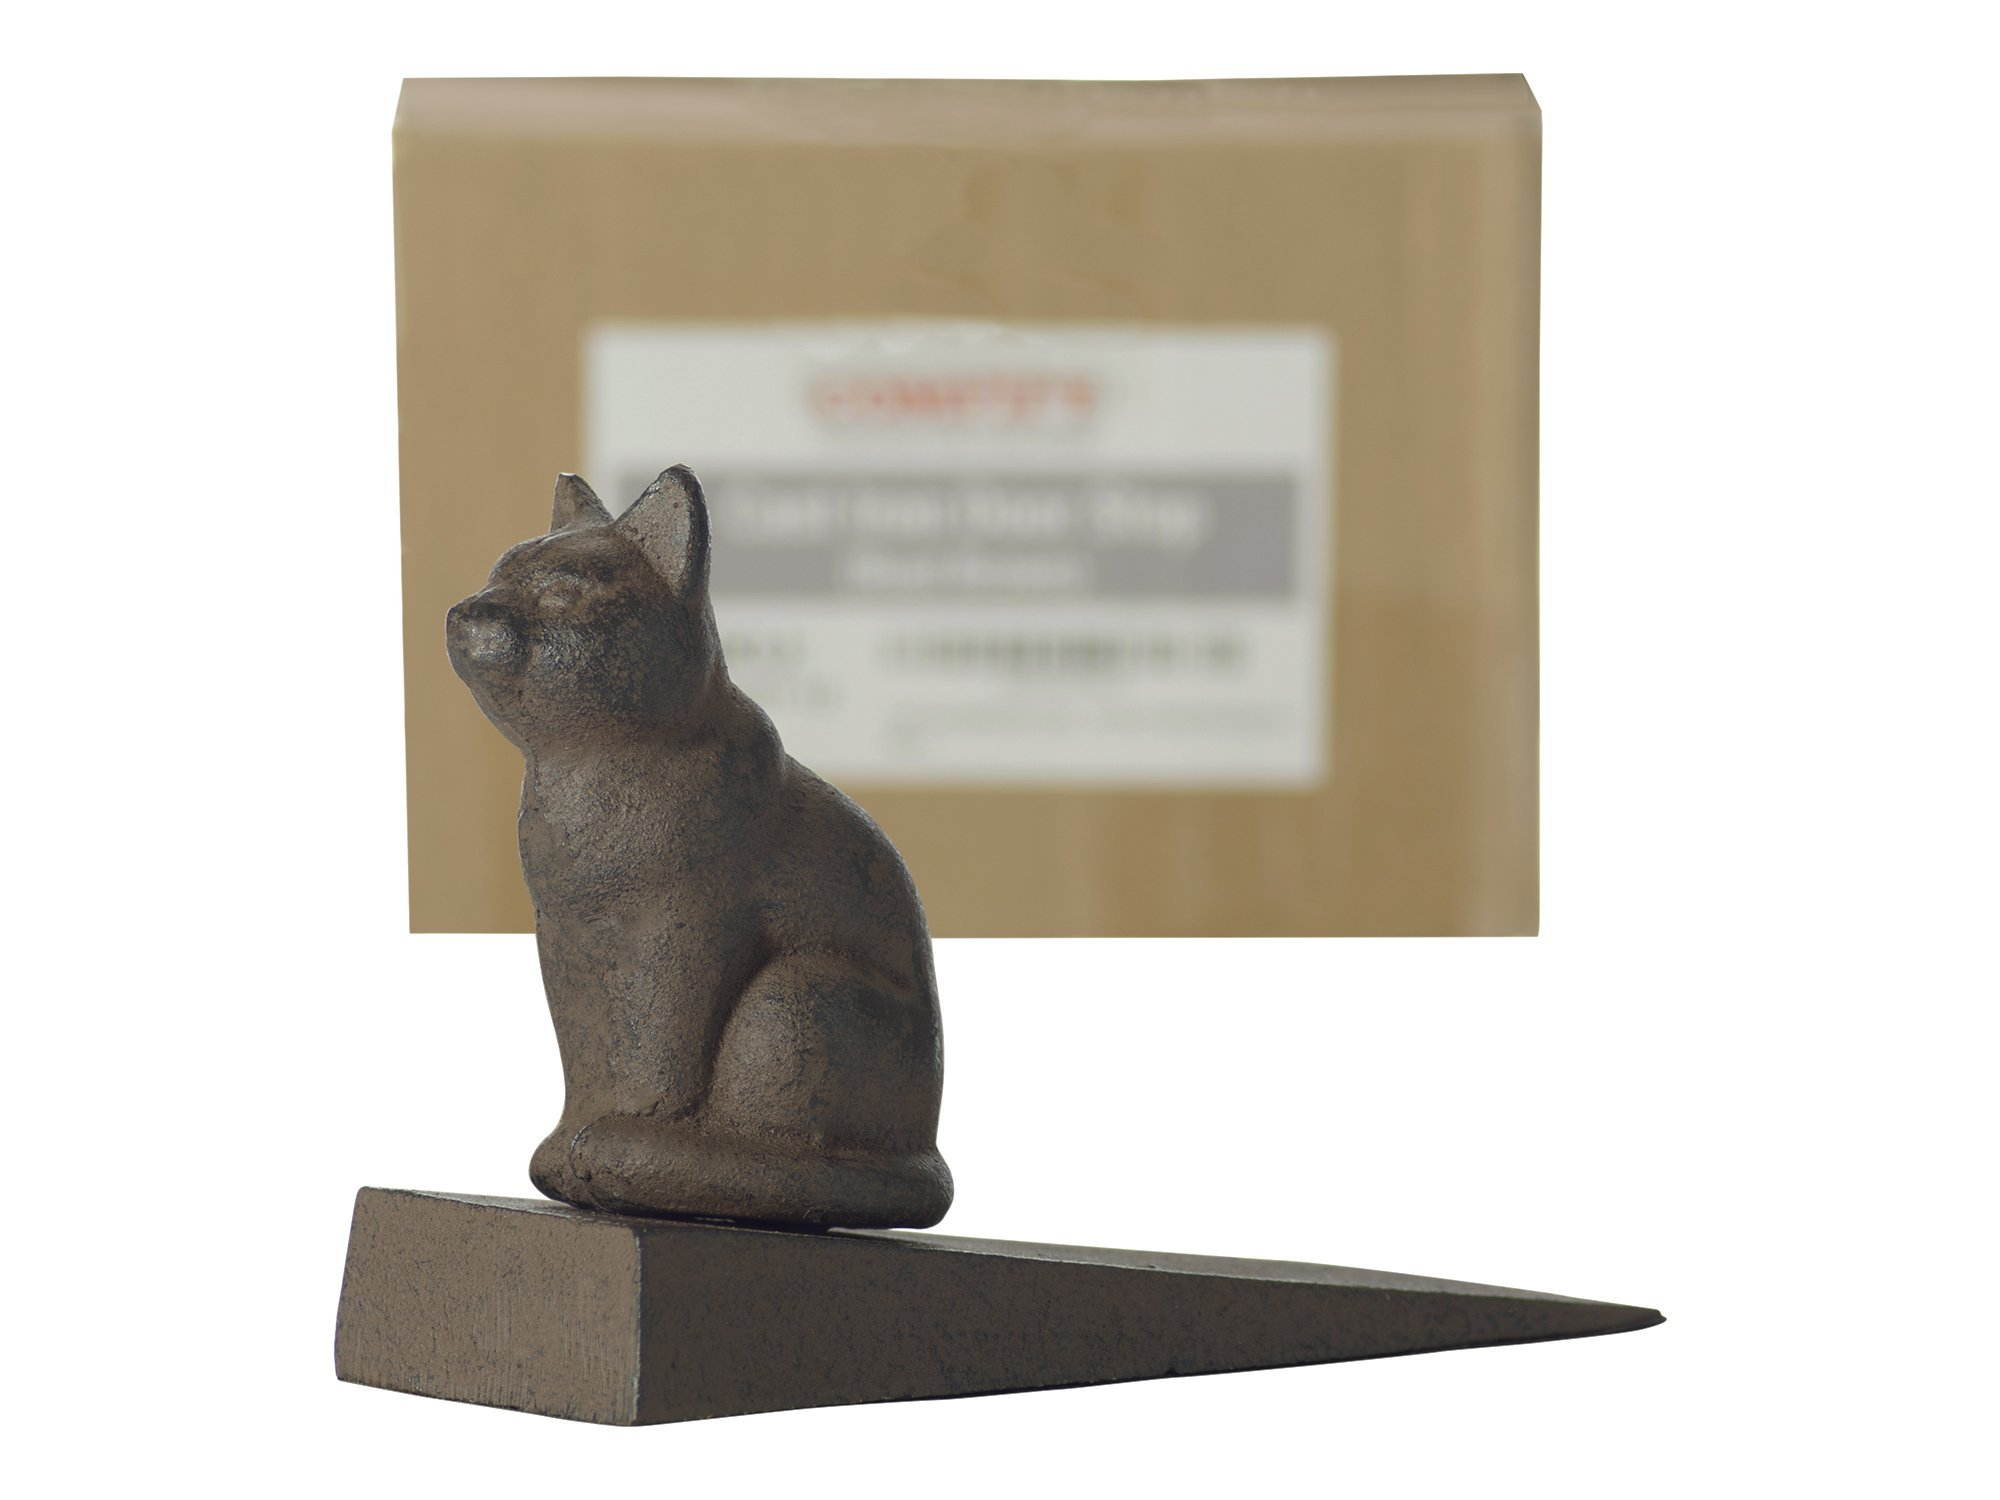 Comfify Vintage Cast Iron Cat Door Stop Wedge Lovely Decorative Finish, Padded Anti-Scratch Felt Bottom Protects Floors   in Rust Brown (Cat Door Stop CA-1507-12) by Comfify (Image #2)